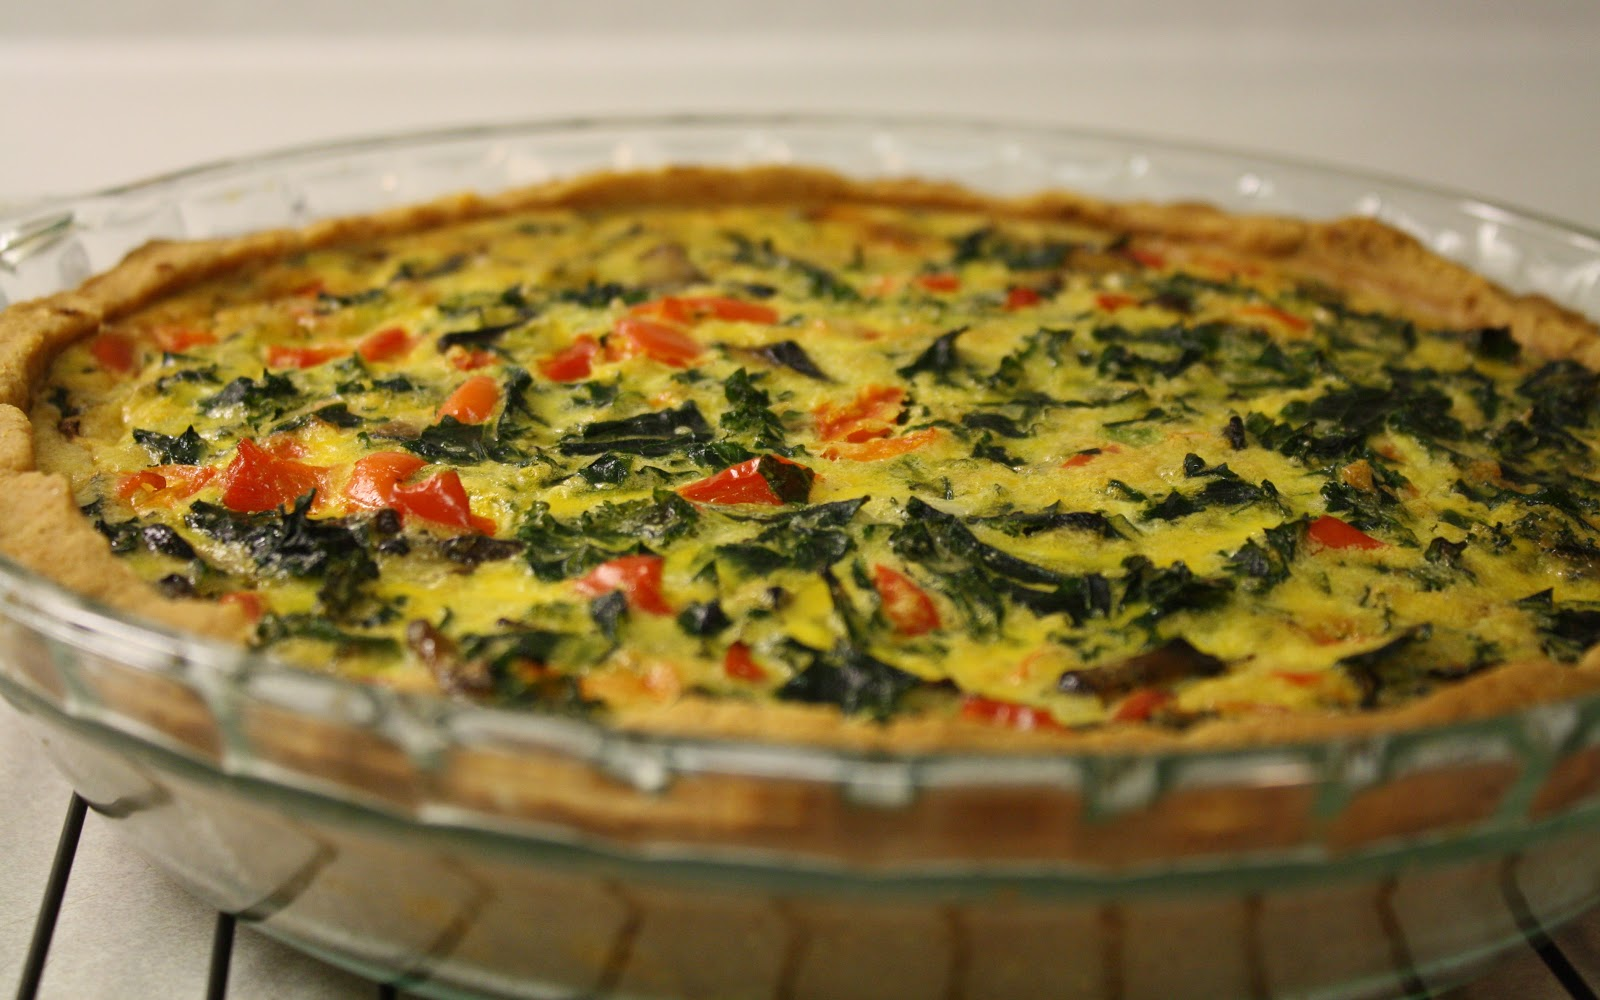 Red Pepper Kale Quiche - grain free